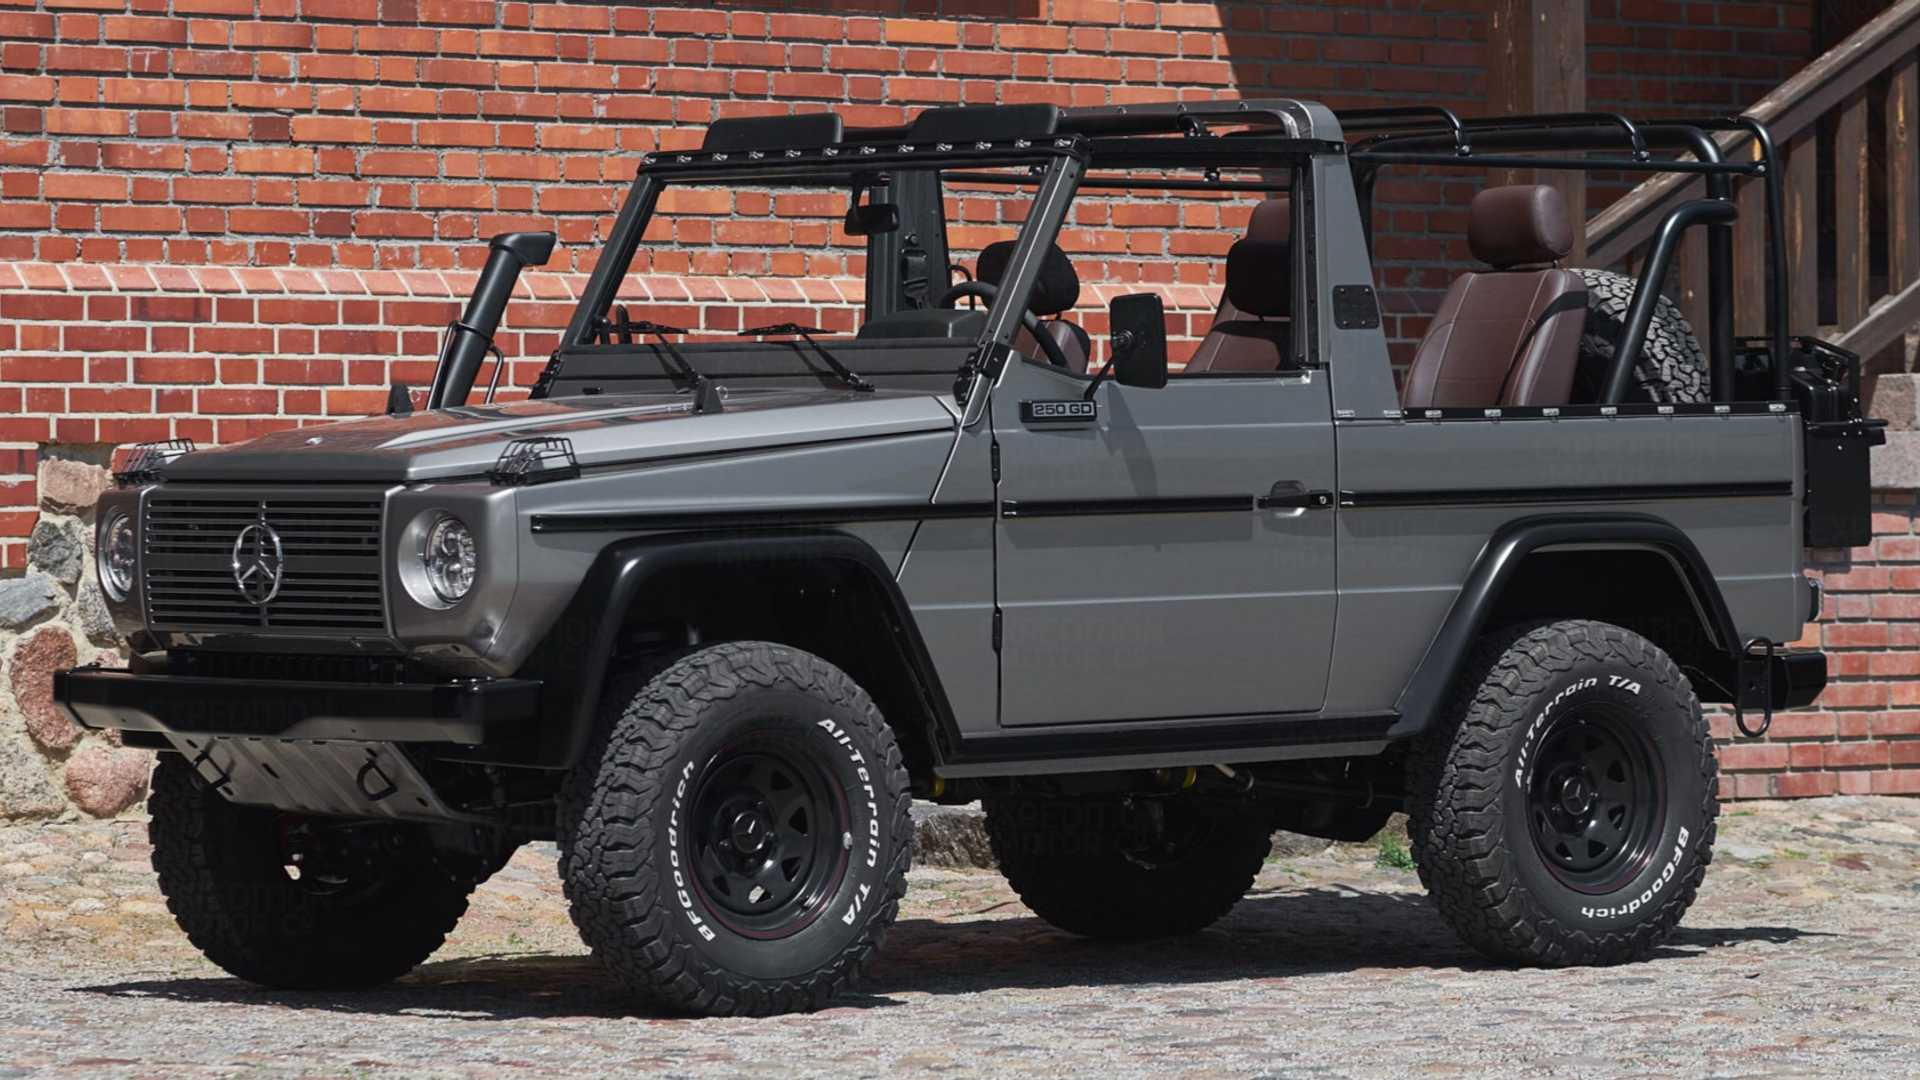 Fully Restored Military-Spec G Is The Ideal Off-Roader (197 Photos)